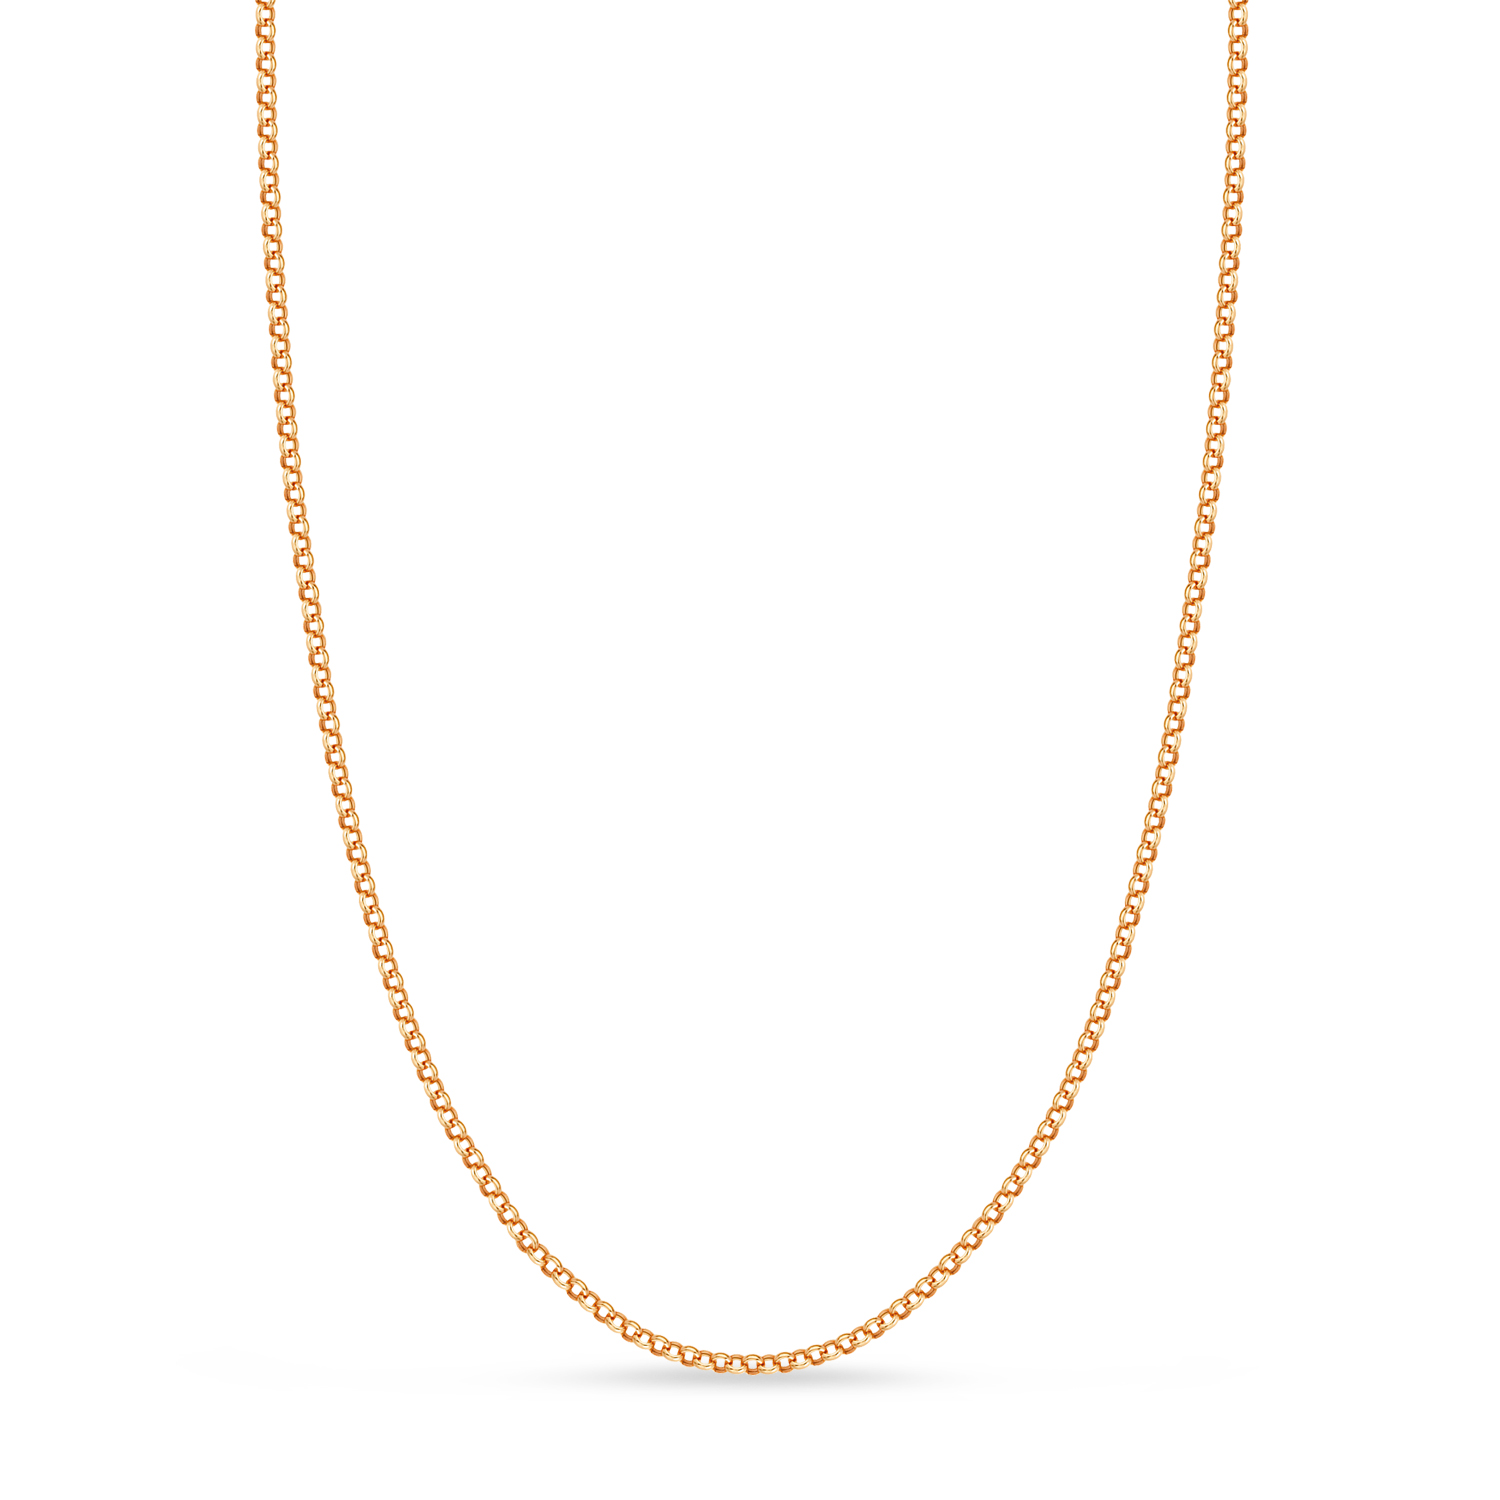 Hollow Rolo Chain Necklace 14k Rose Gold